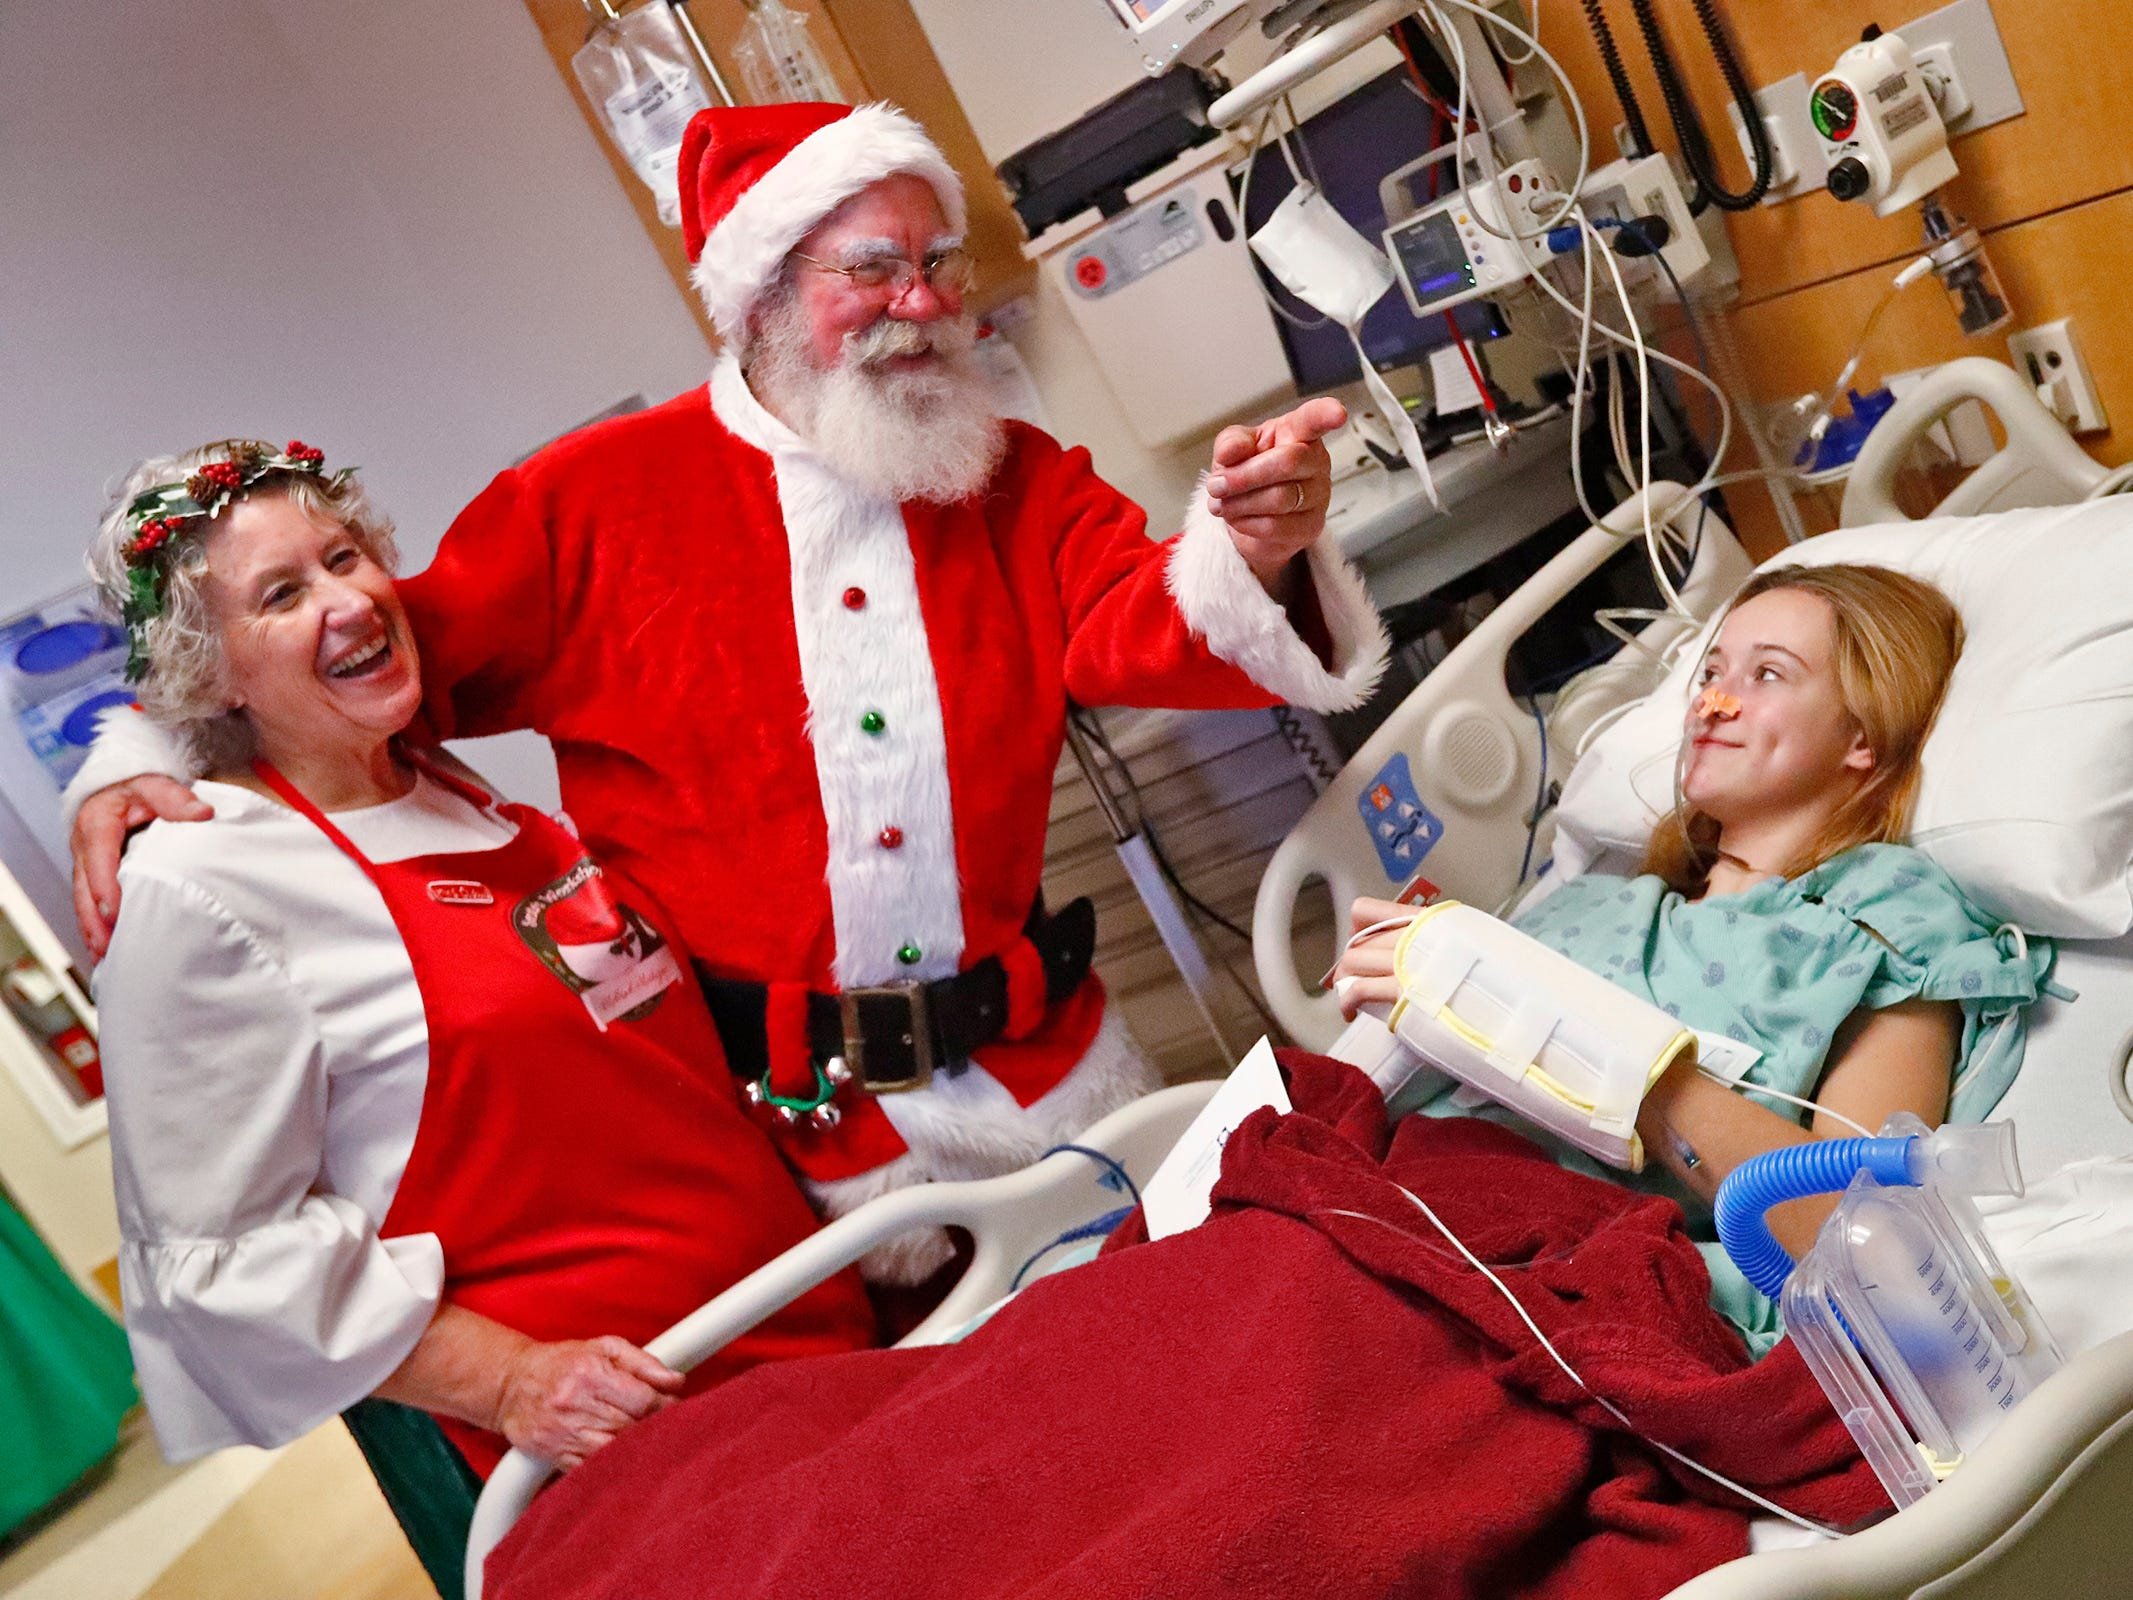 Santa and Mrs. Claus, aka Bill and Kathy Armstrong, talk with Ivy Abbott, while they visit with kids at Riley Children's Health, Thursday, Dec. 13, 2018.